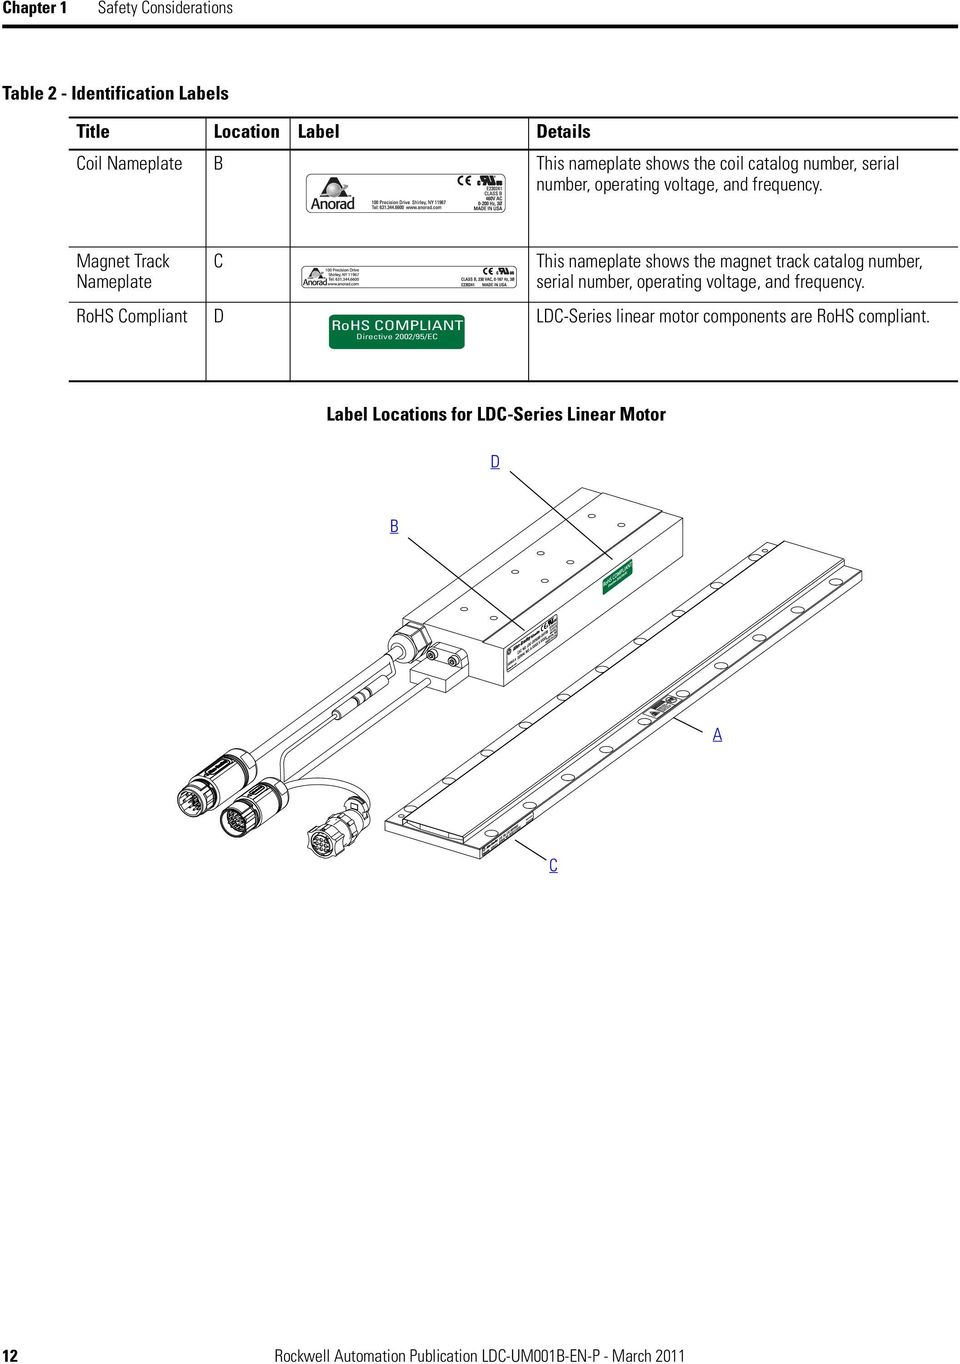 Ldc Series Iron Core Linear Servo Motors Pdf Fig 26wiring Diagram For Complete Sending And Receiving Set No 1 Magnet Track Nameplate C This Shows The Catalog Number Serial